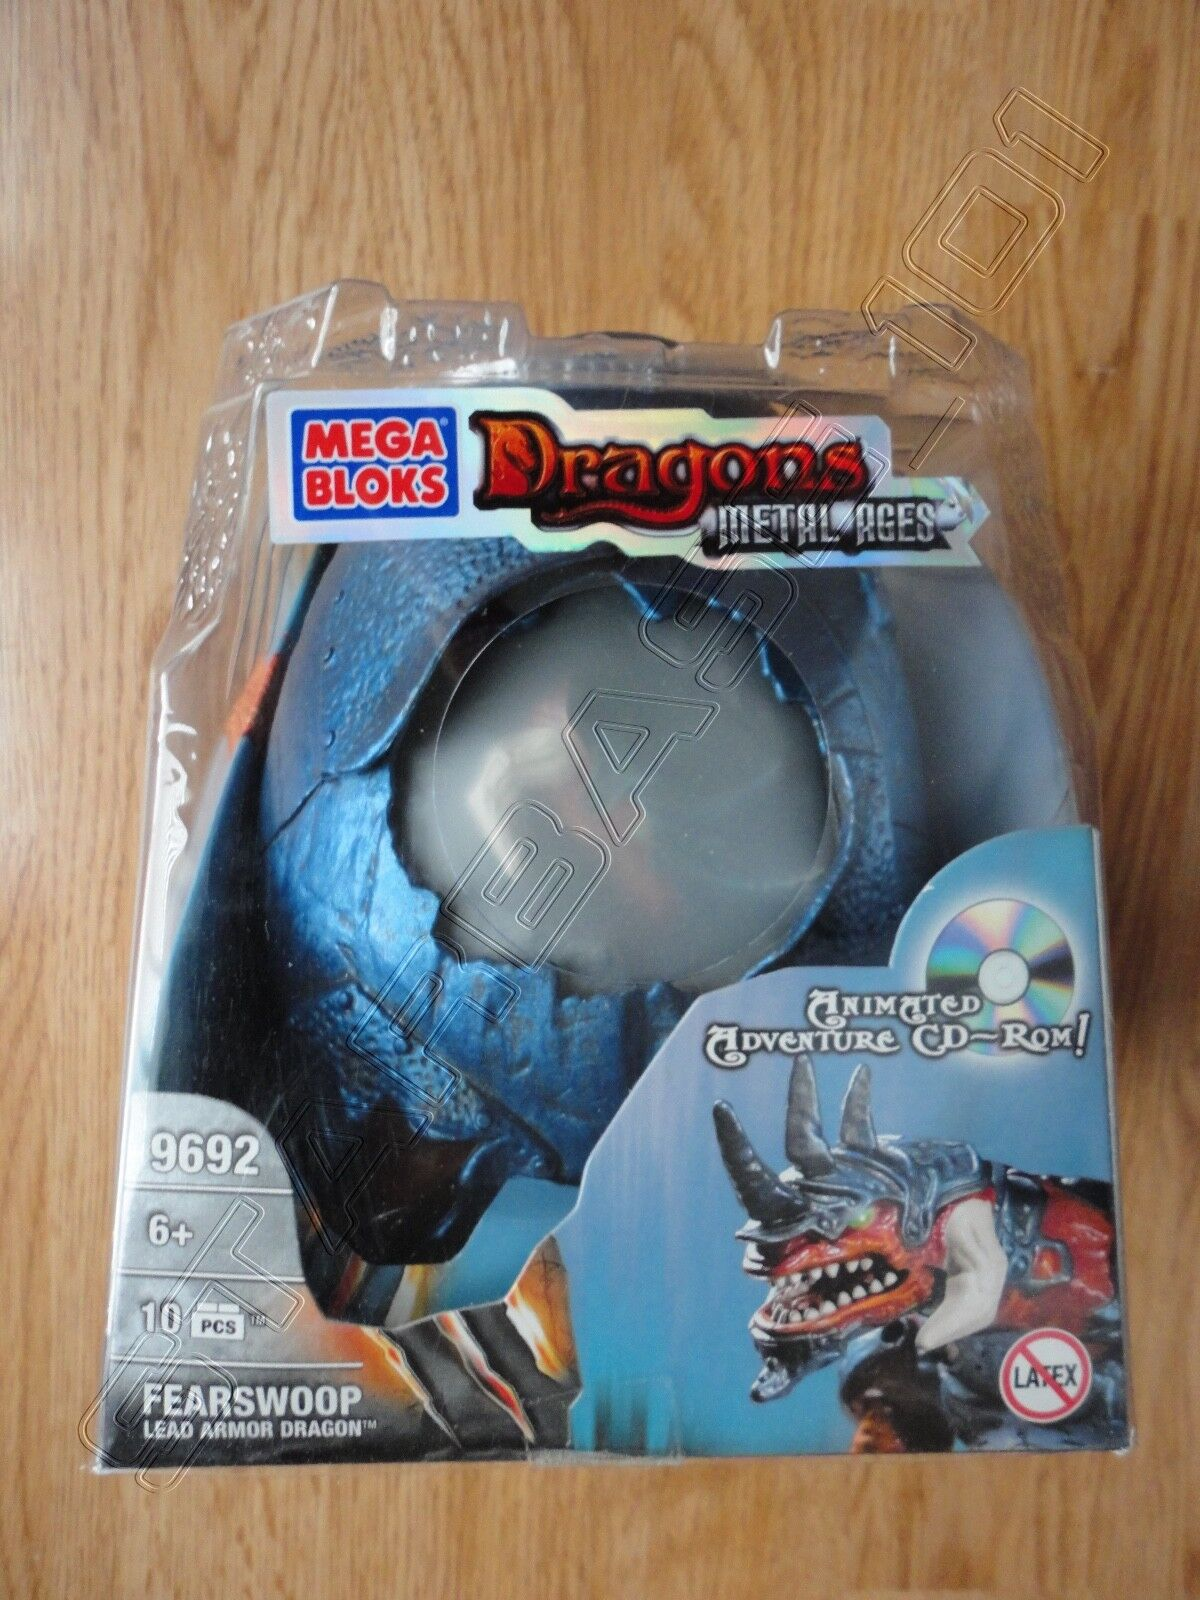 Mega Mega Mega Bloks Dragons Metal Ages FEARSWOOP Lead Dragon Egg - New Sealed ee495d